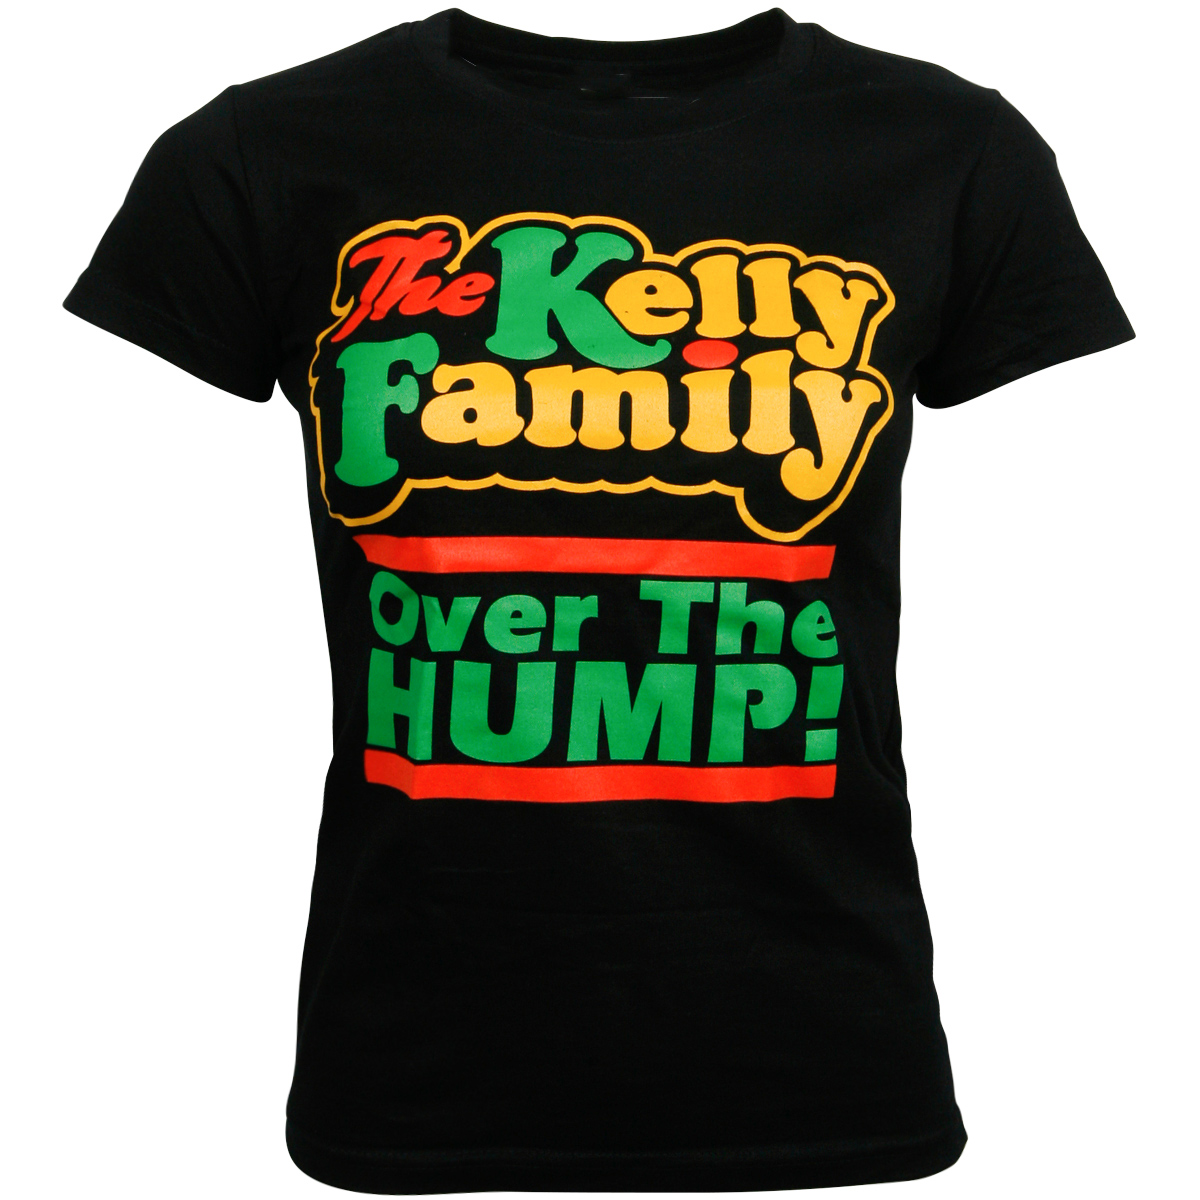 The Kelly Family - Damen T-Shirt Over the Hump - schwarz